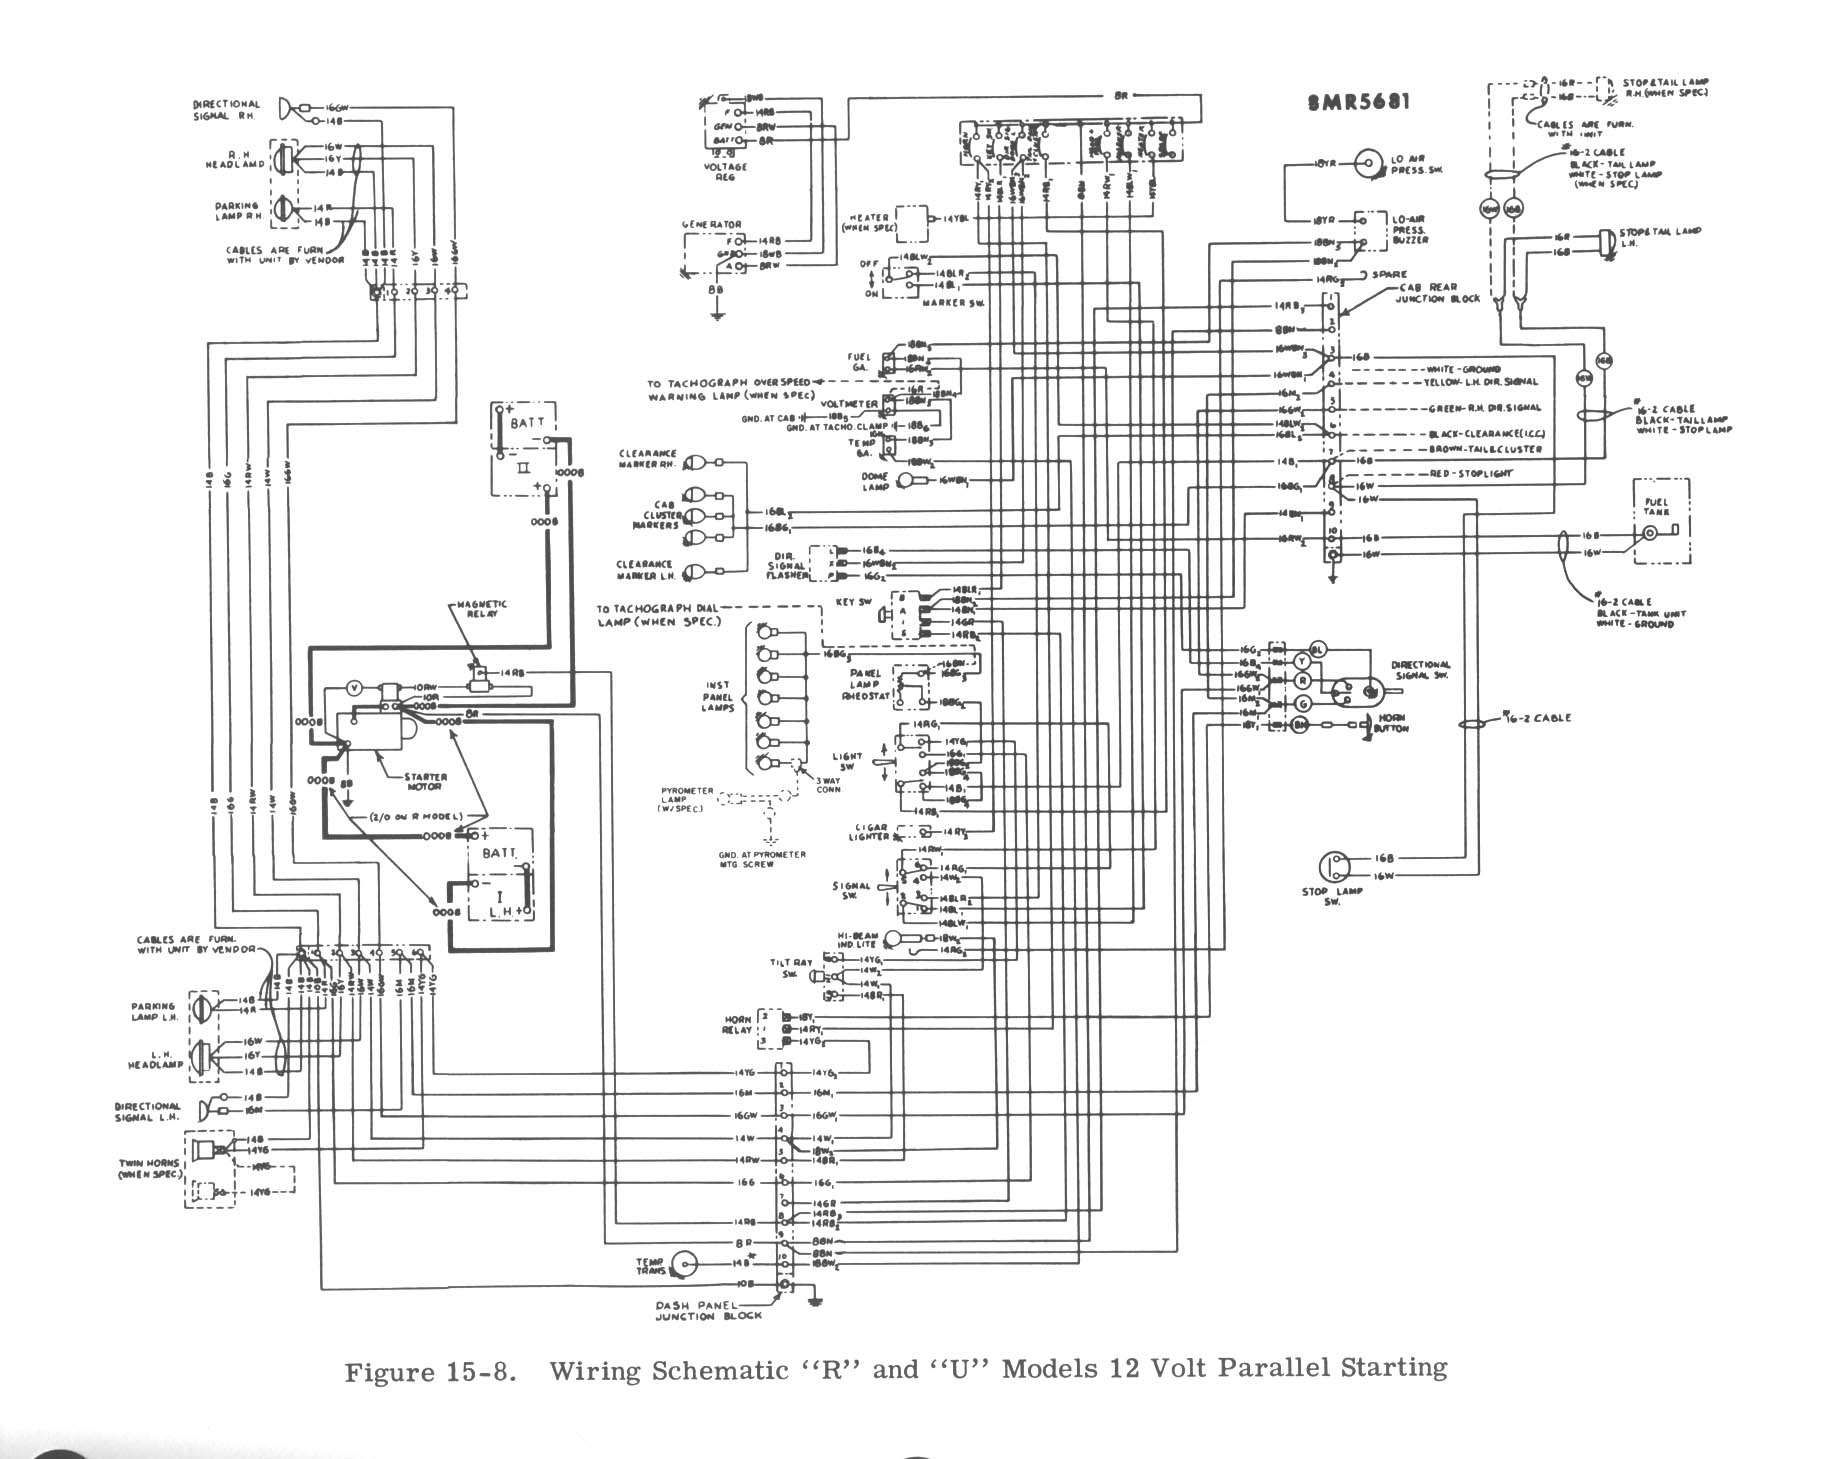 mack wiring schematics wiring diagram img mack granite wiring diagram mack wiring diagram [ 1828 x 1459 Pixel ]